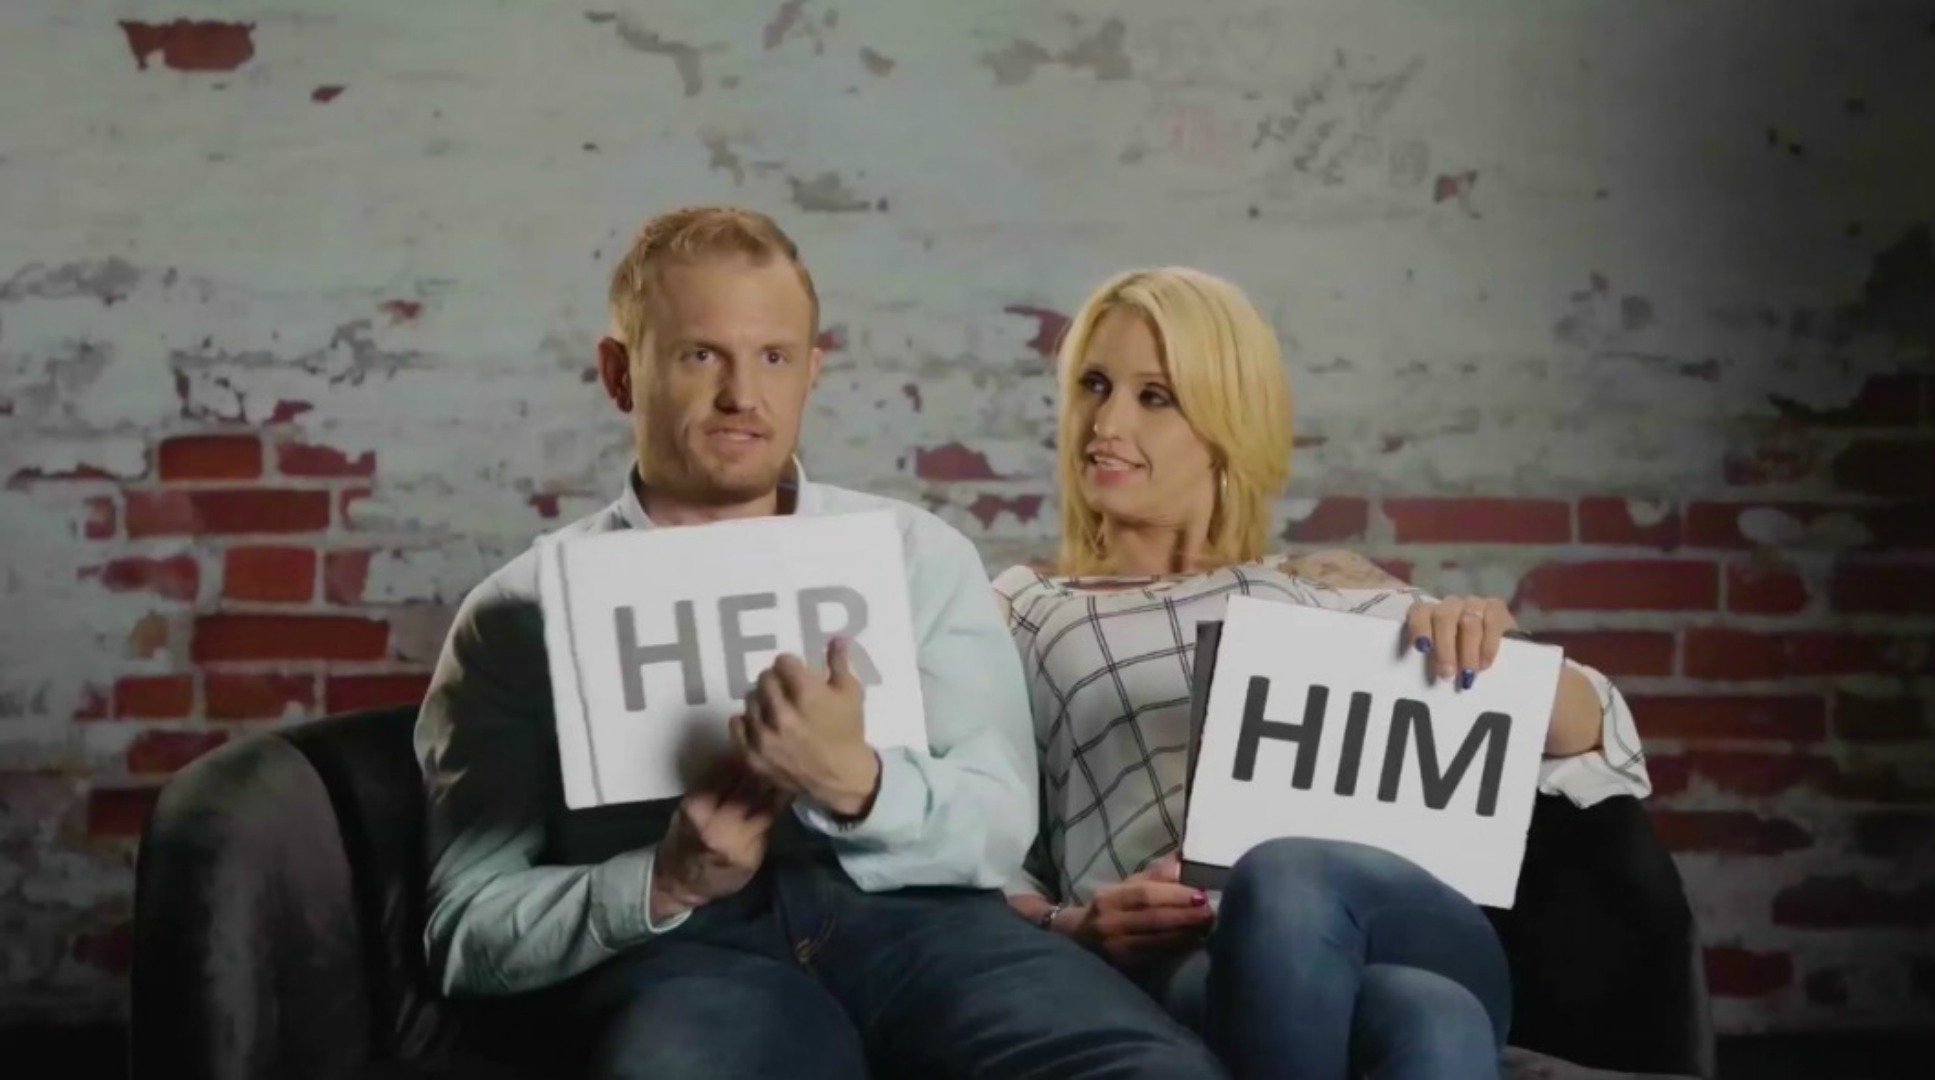 Him vs. Her: Clint & Tracie